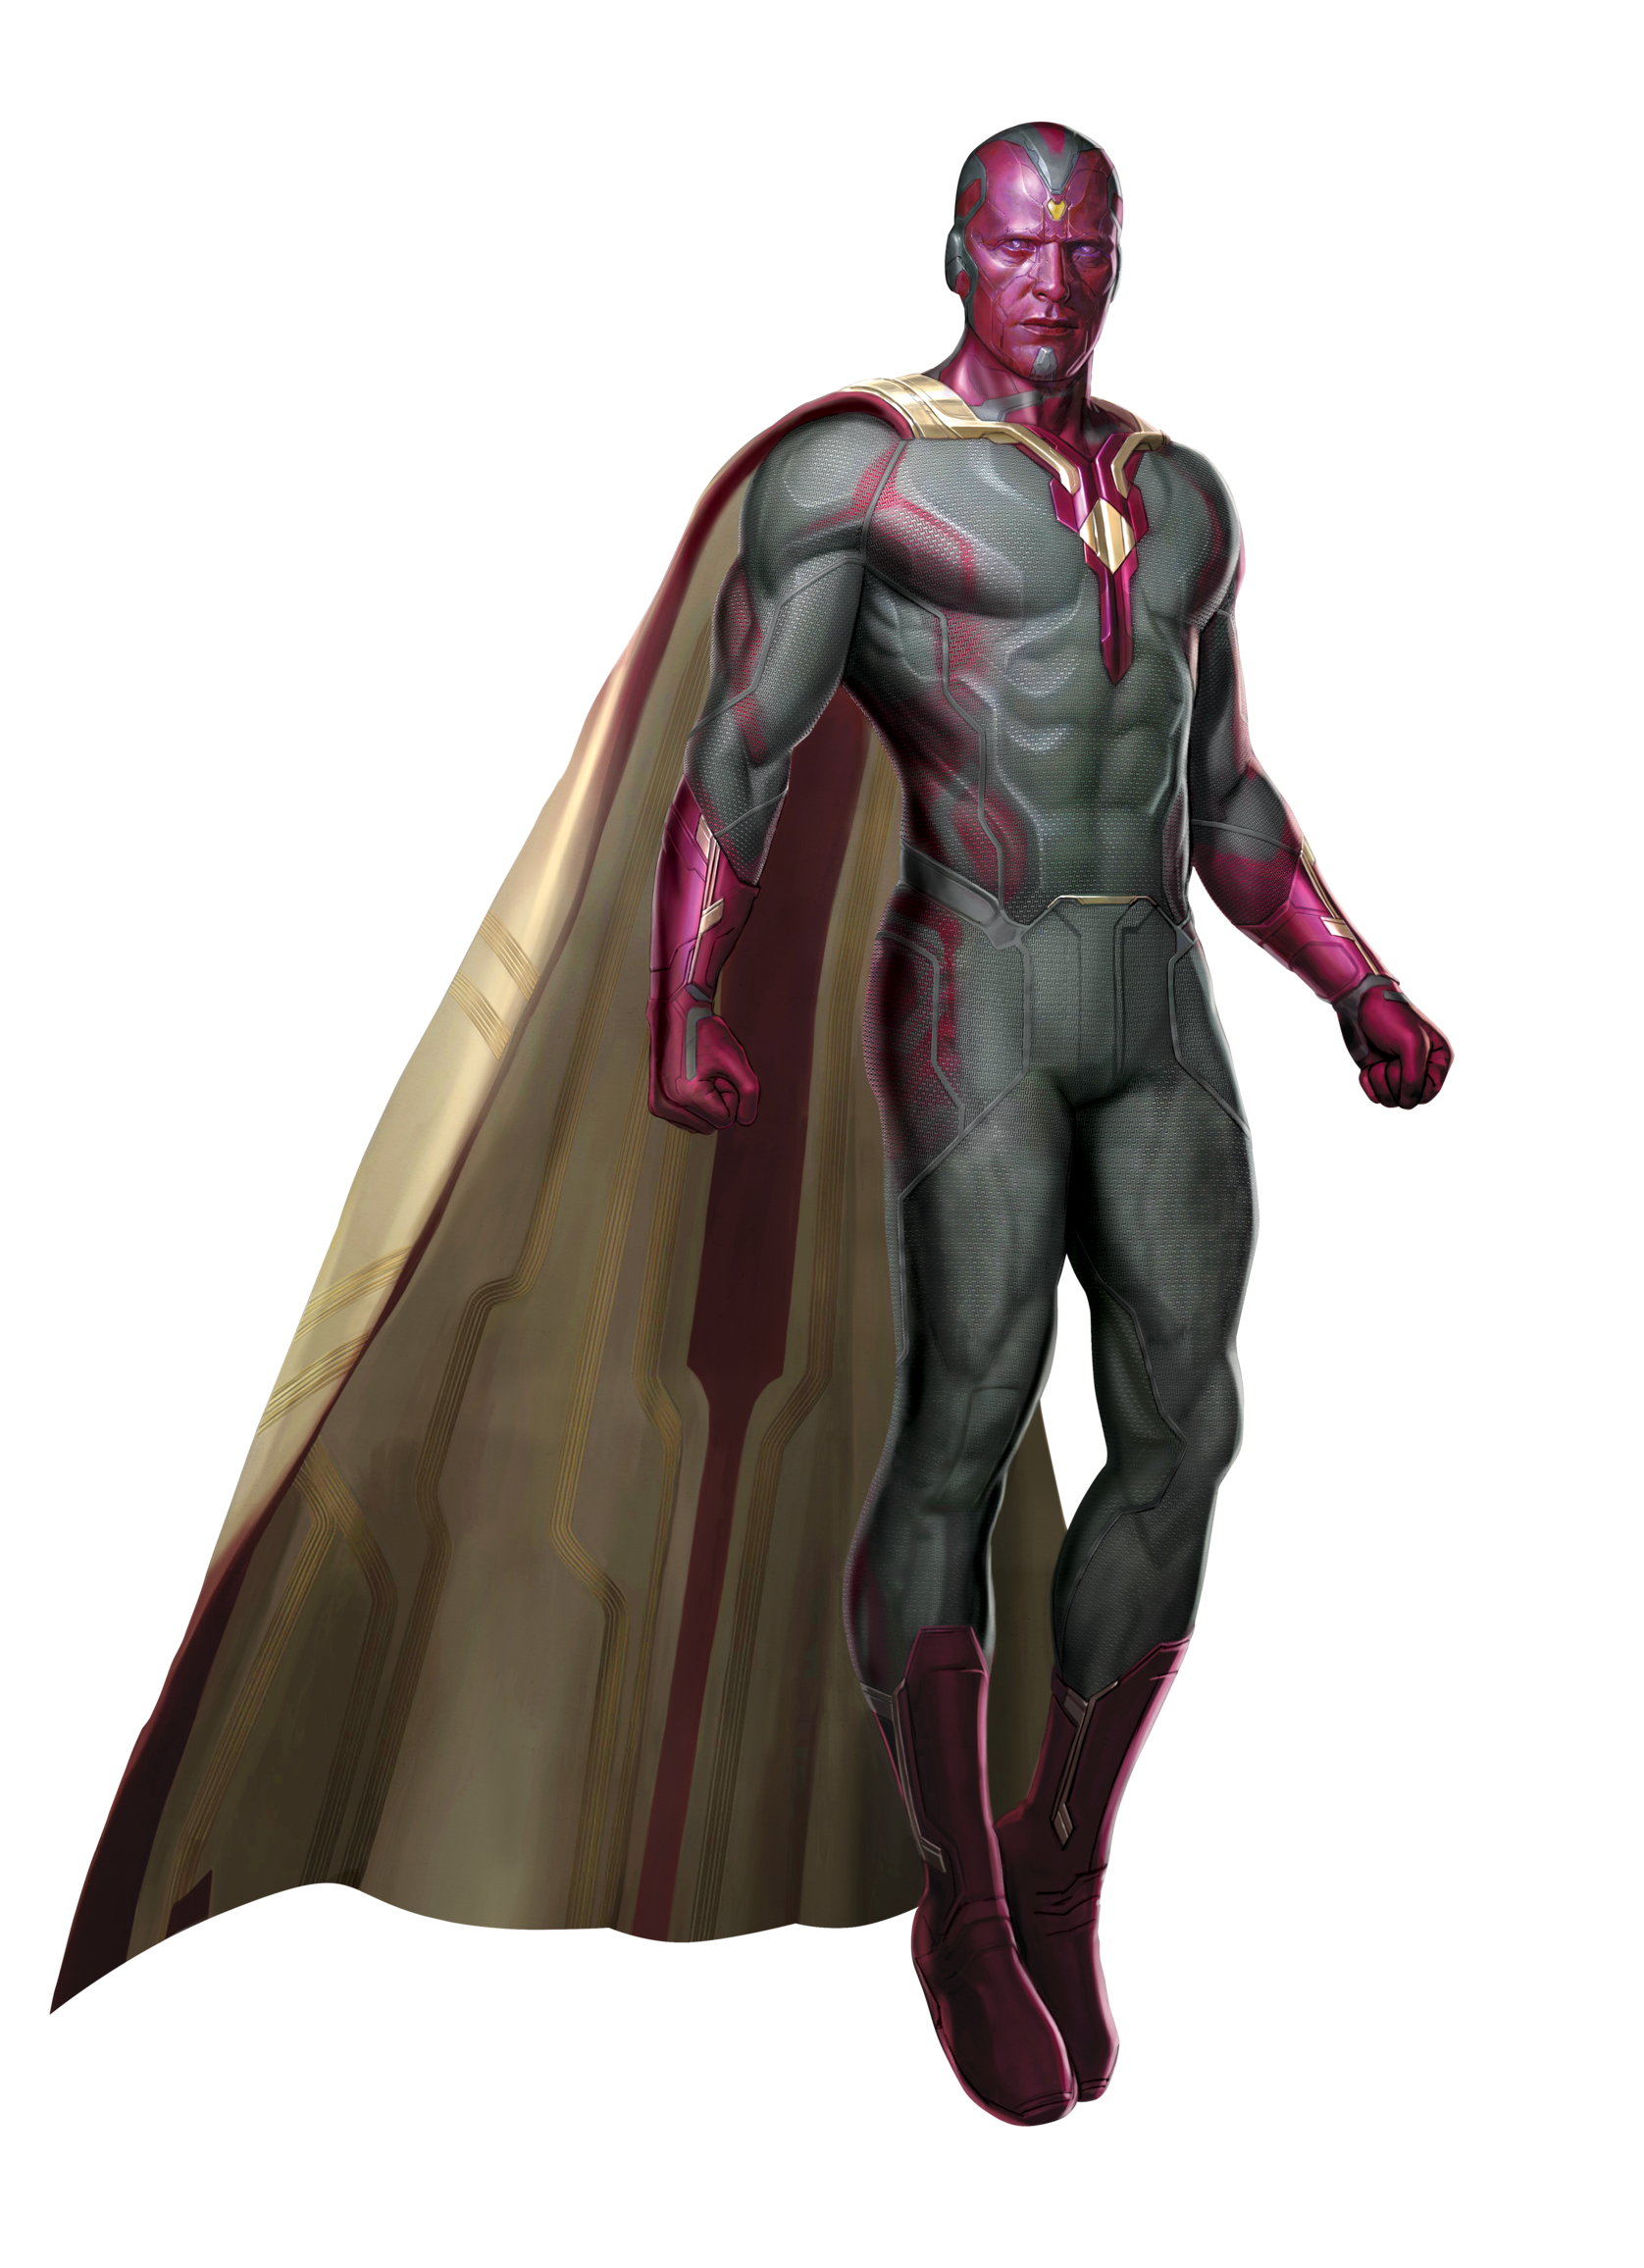 Marvel vision png. Image aou cinematic universe